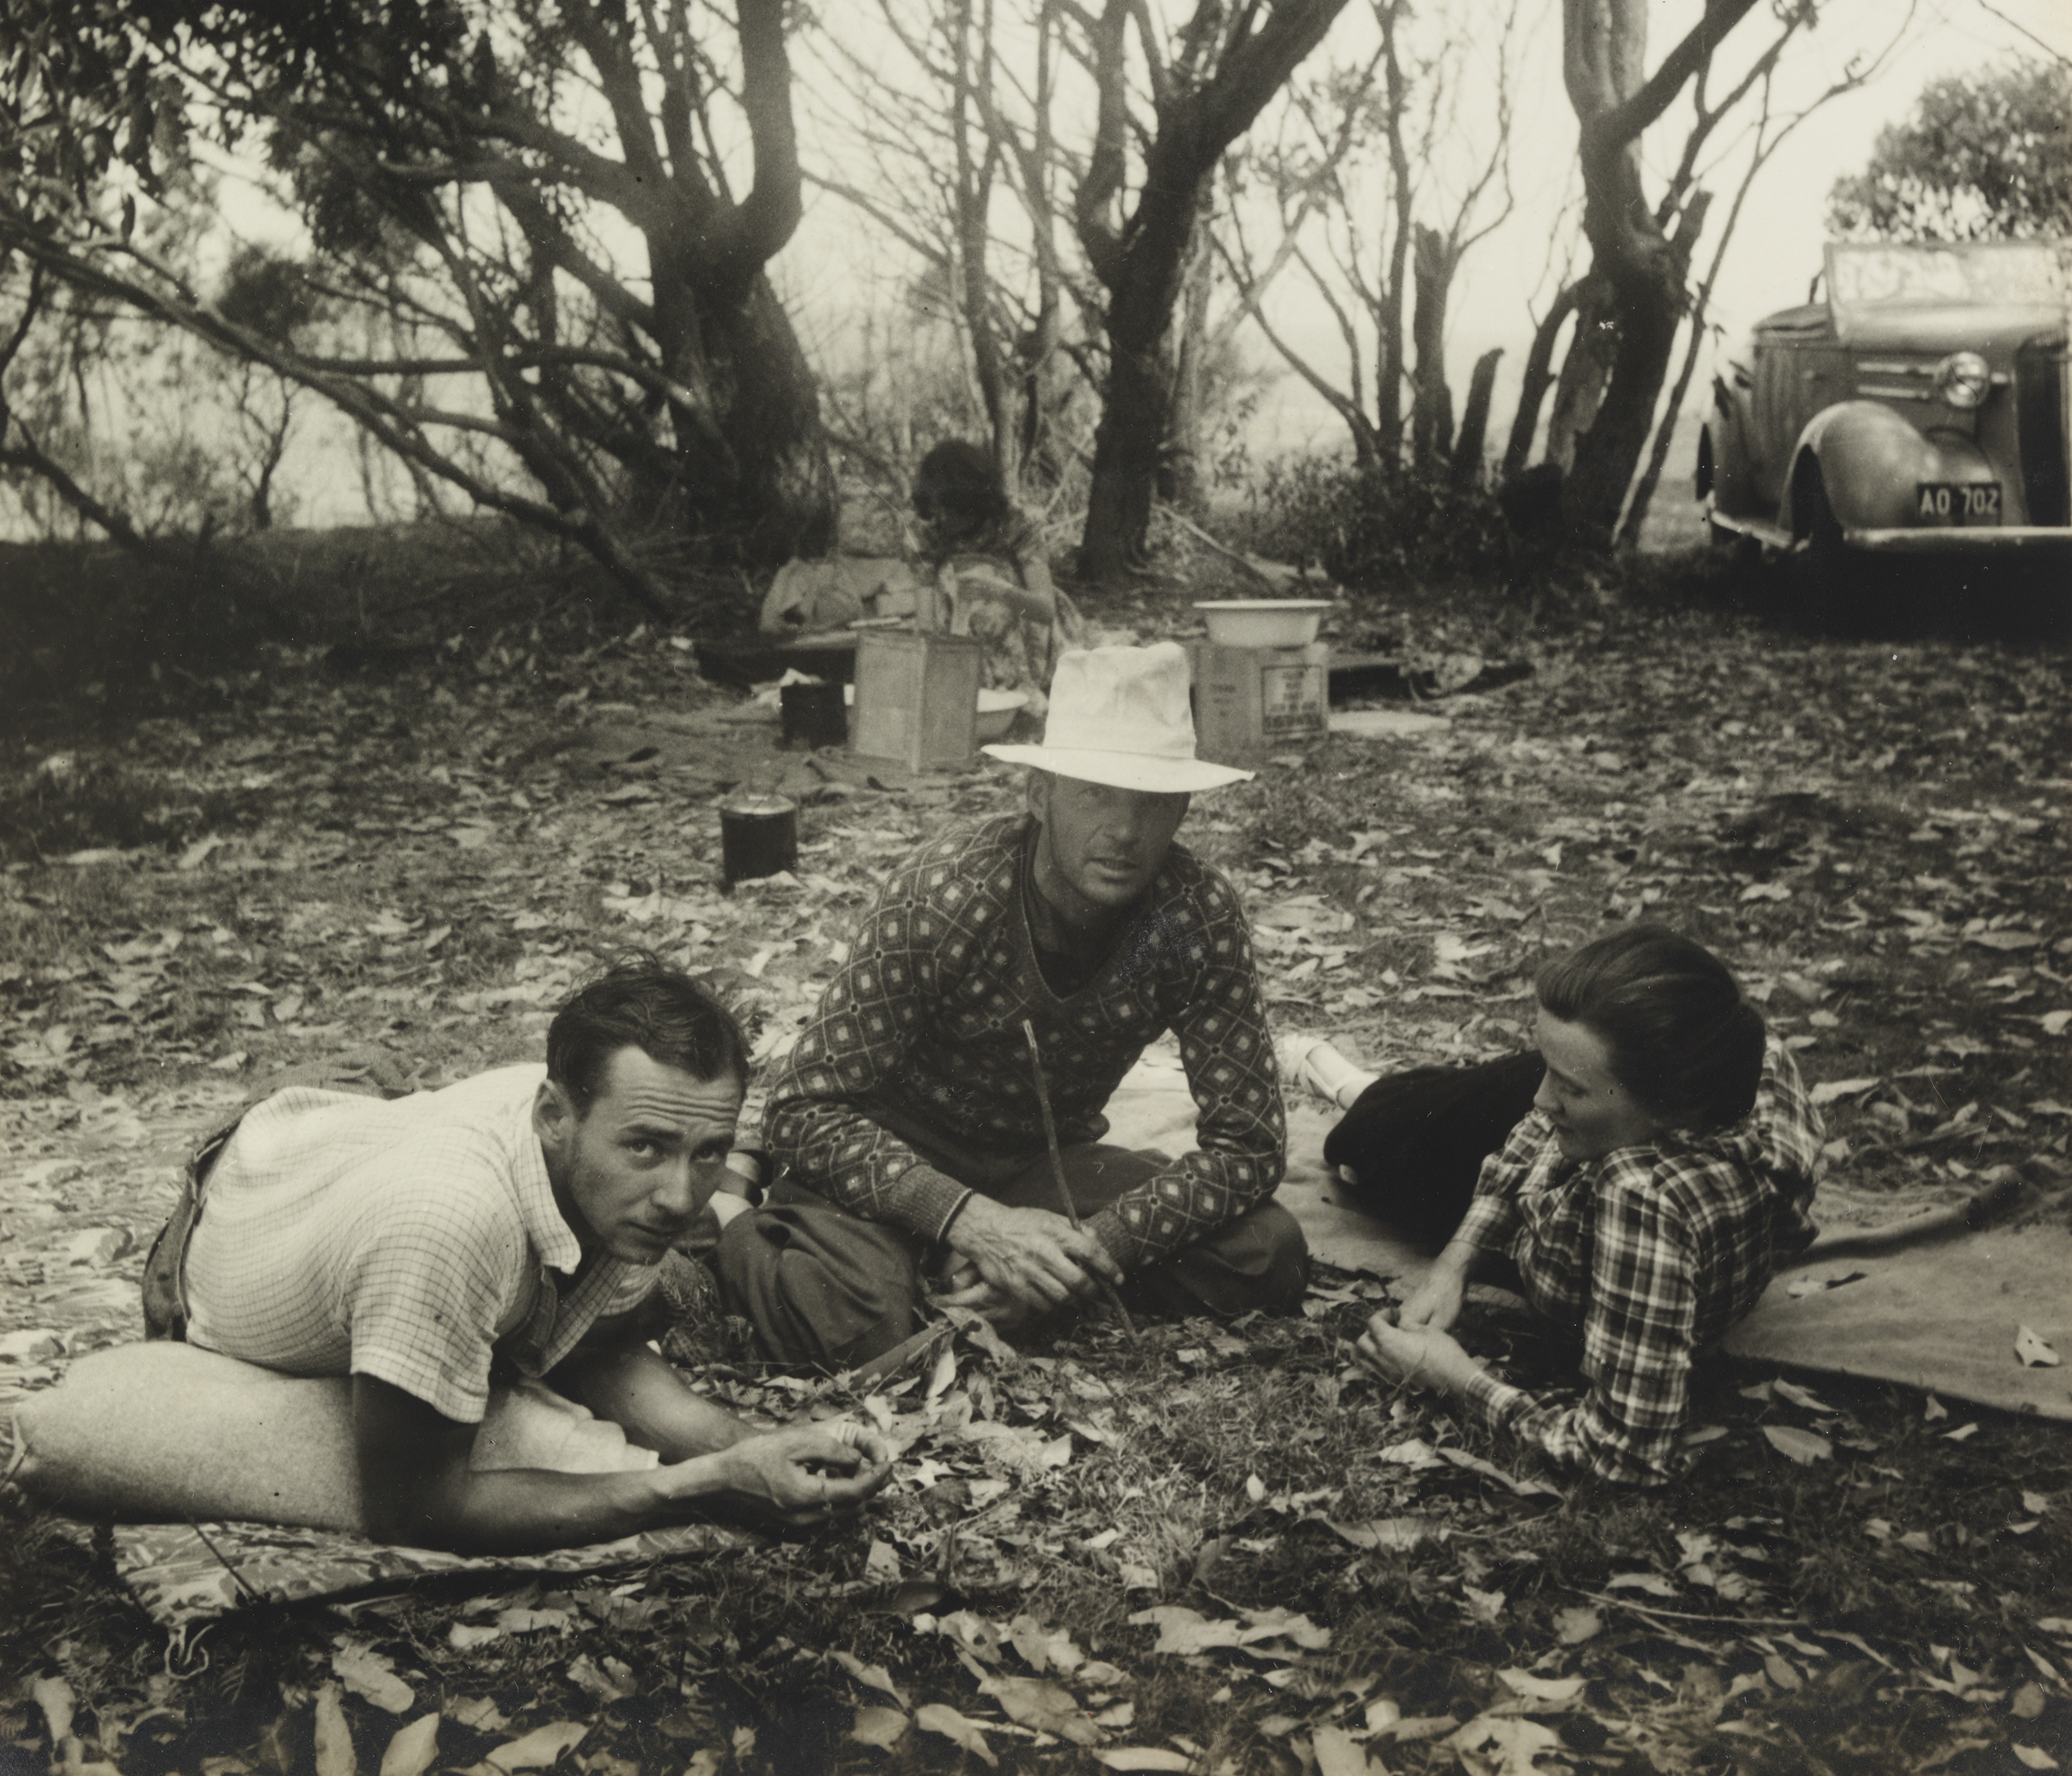 A black and white photograph of two men and a woman sitting on a leaf littered ground. In the background a 1930s style car is parked and woman prepares food in a makeshift camp kitchen.